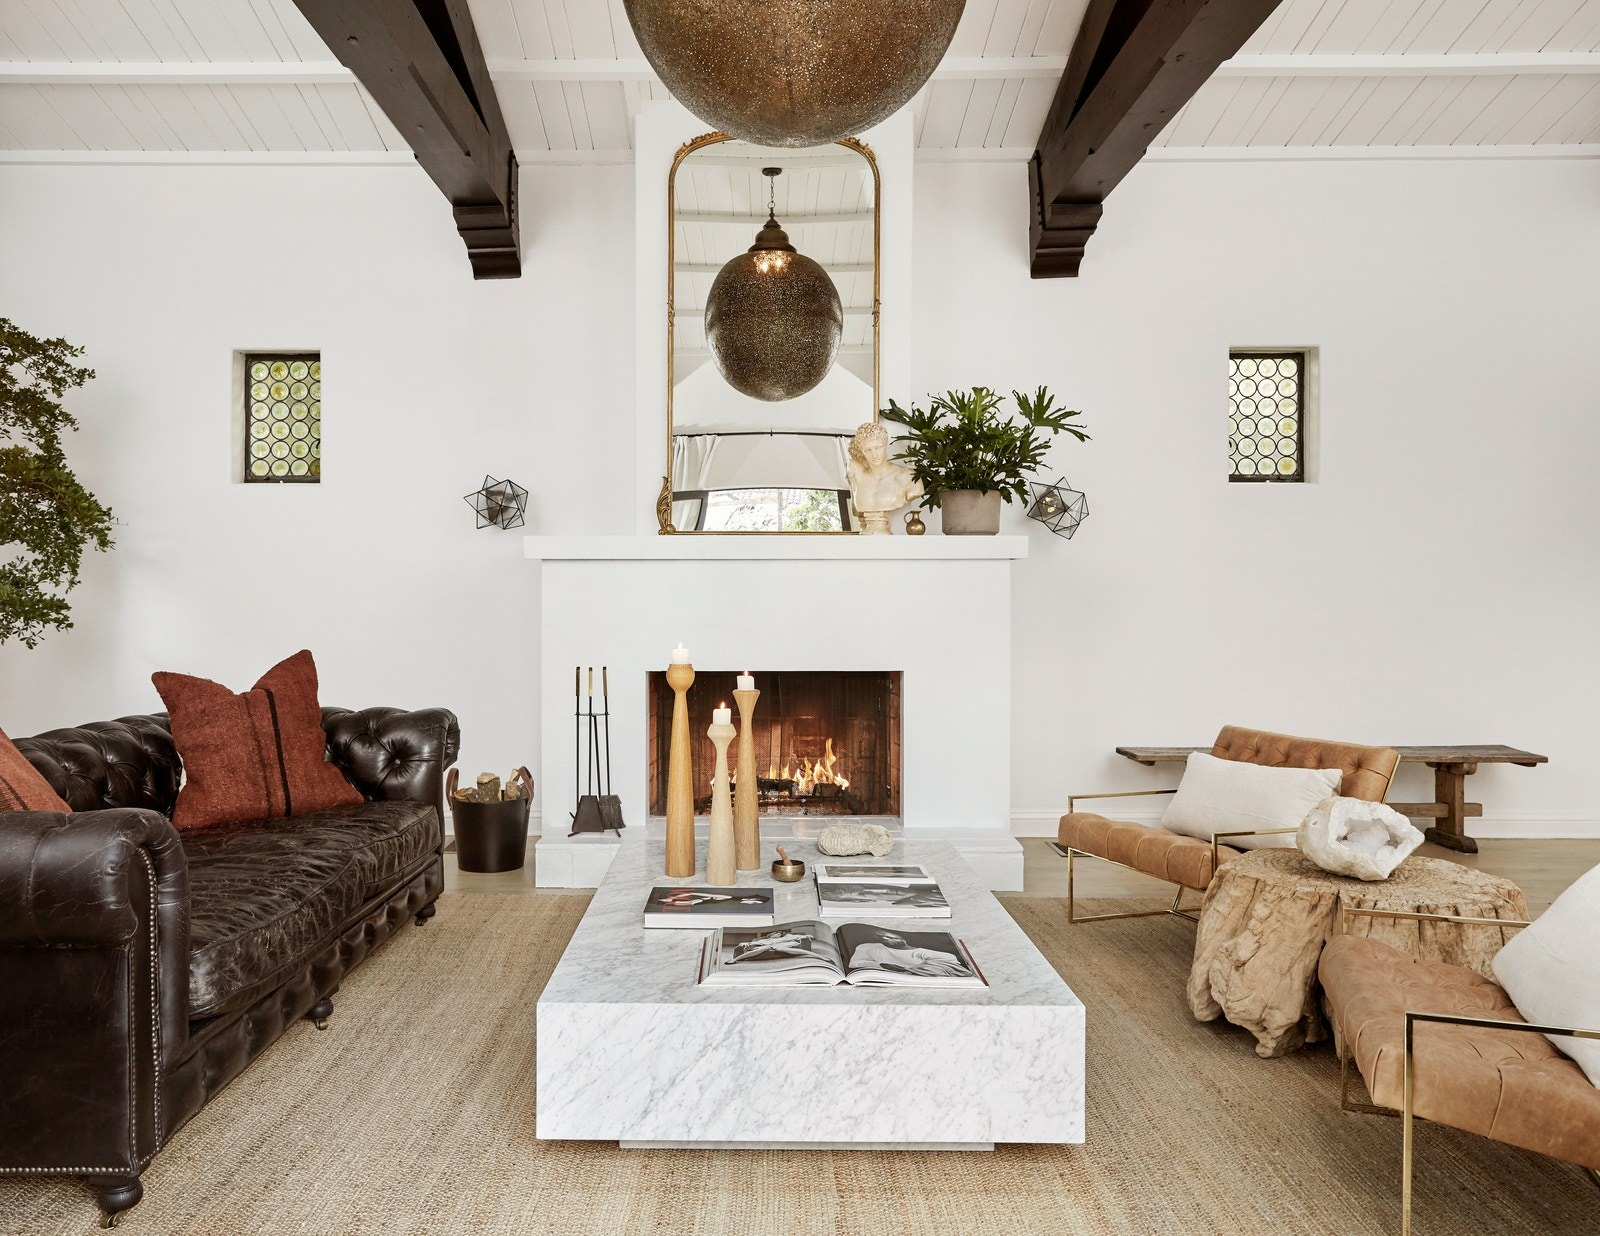 los angeles homes Los Angeles Homes: Meet Shay Mitchell's Redecorated Oasis 5